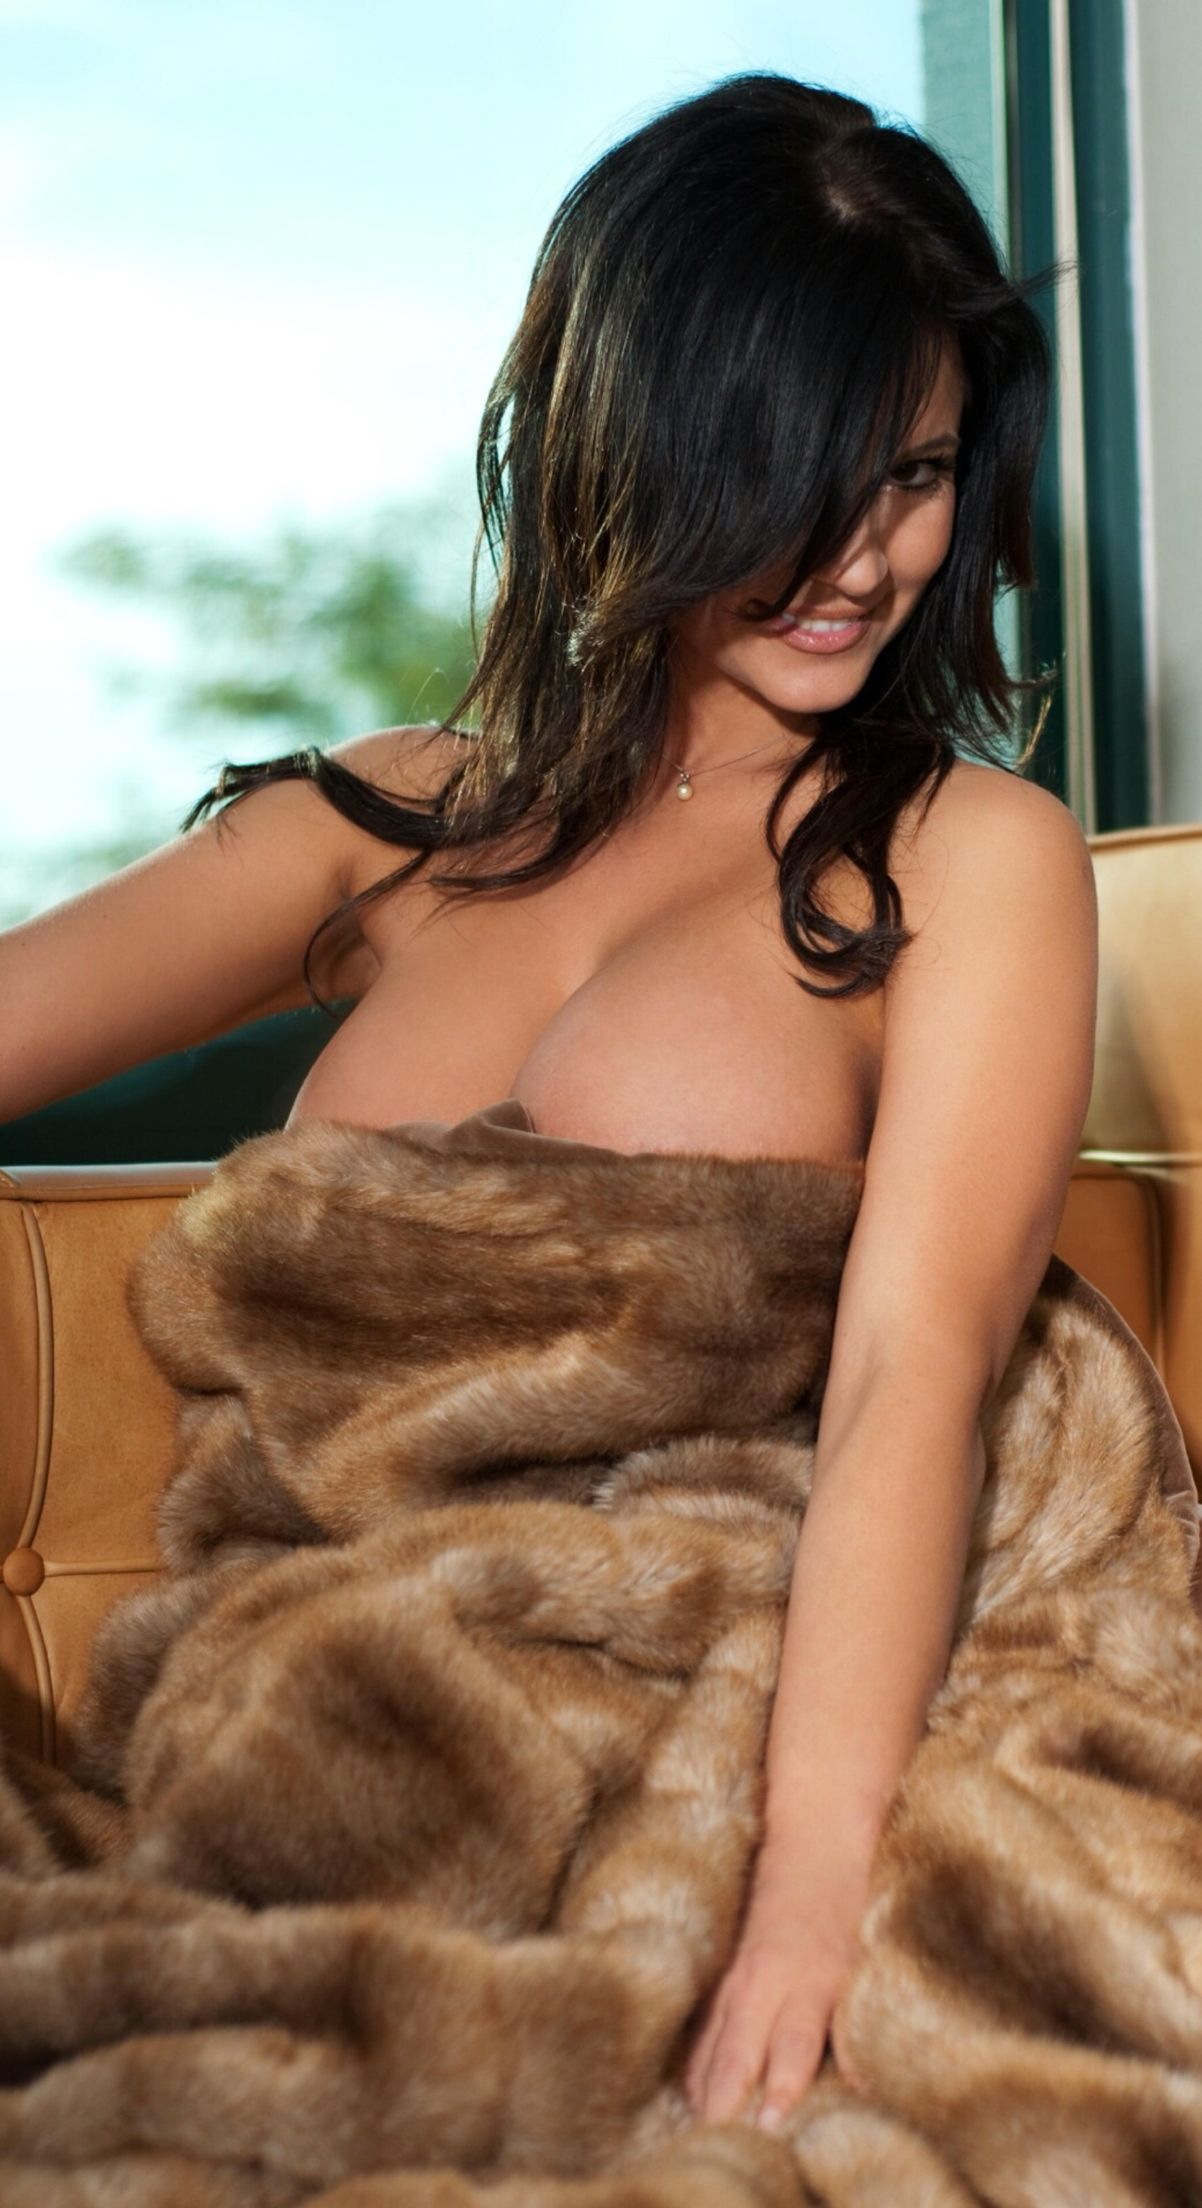 denise milani | f | pinterest | milani, hot clothes and weather